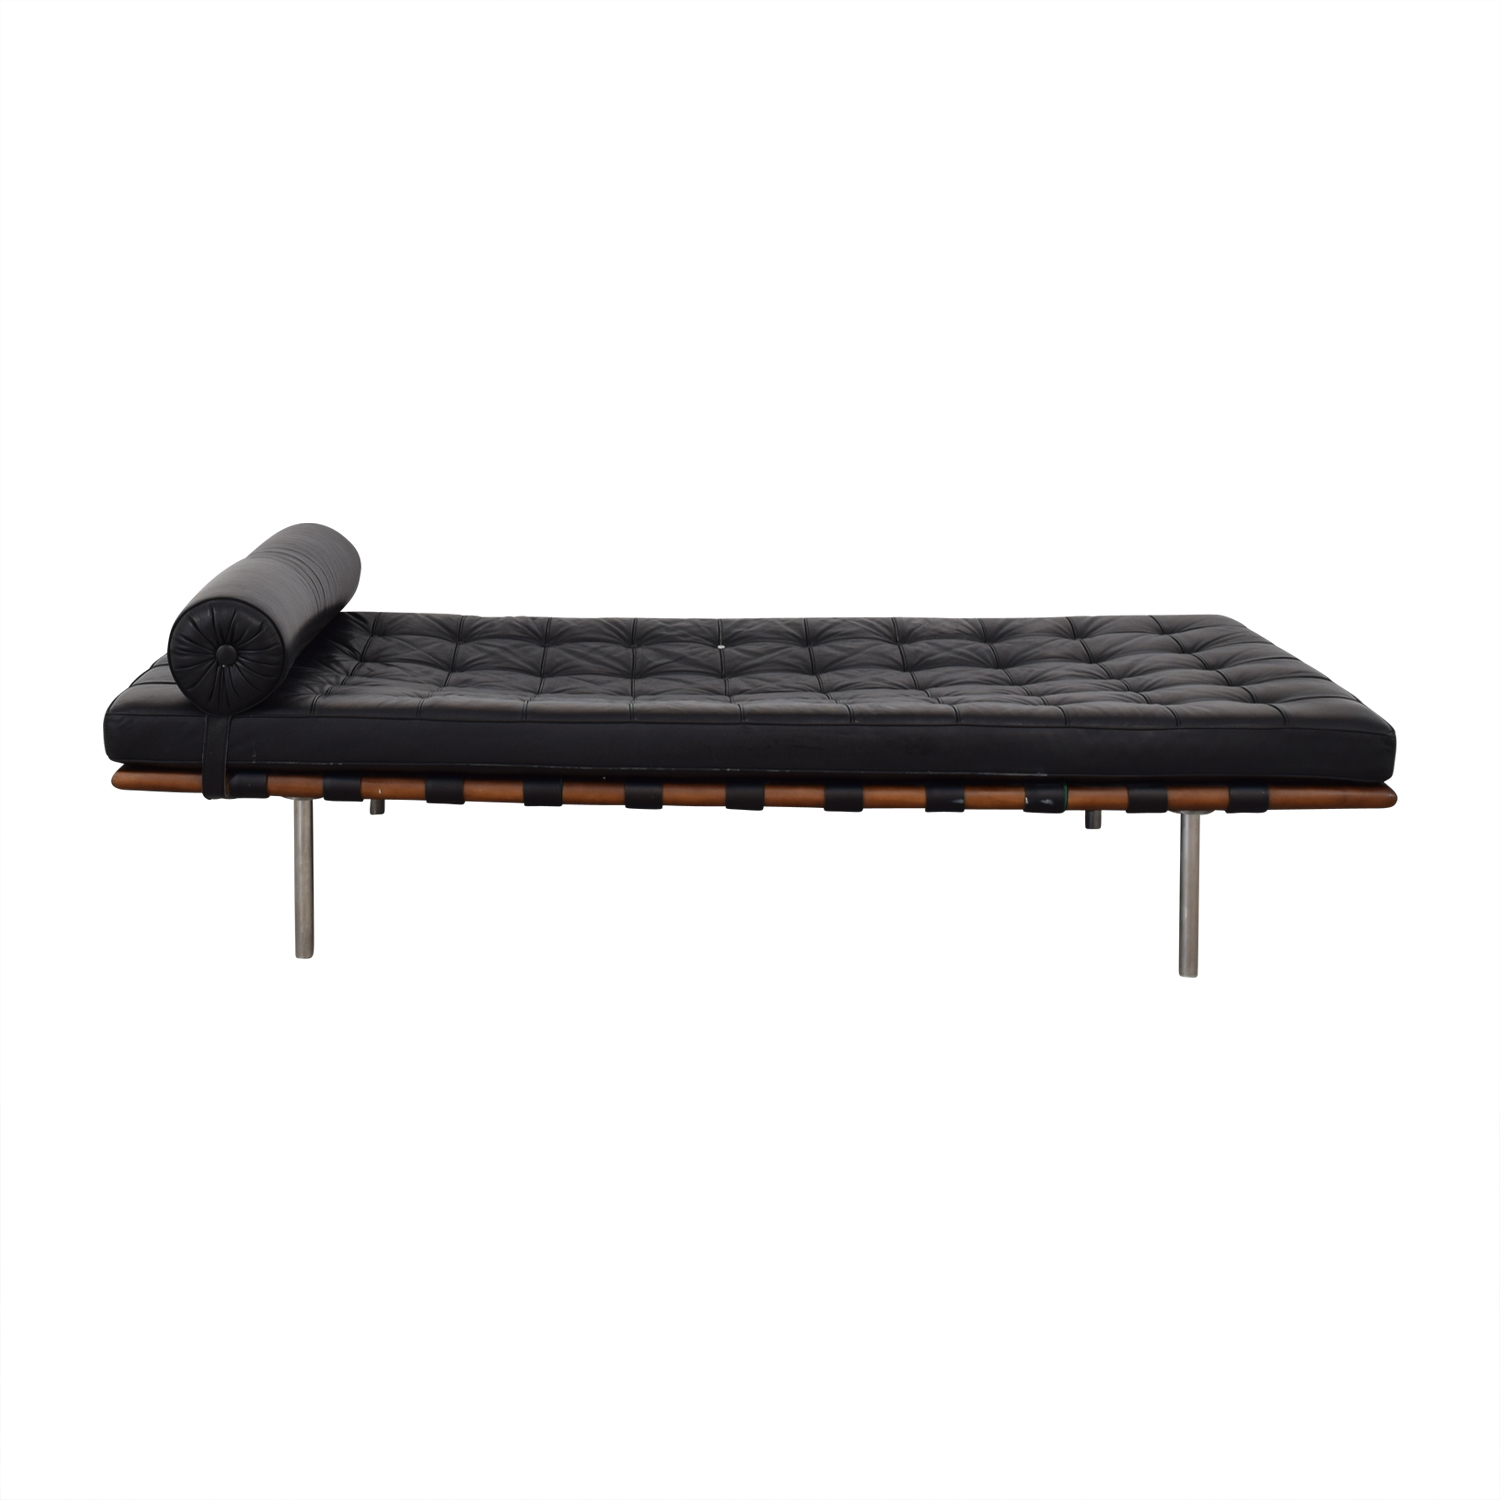 Barcelona Replica Day Bed